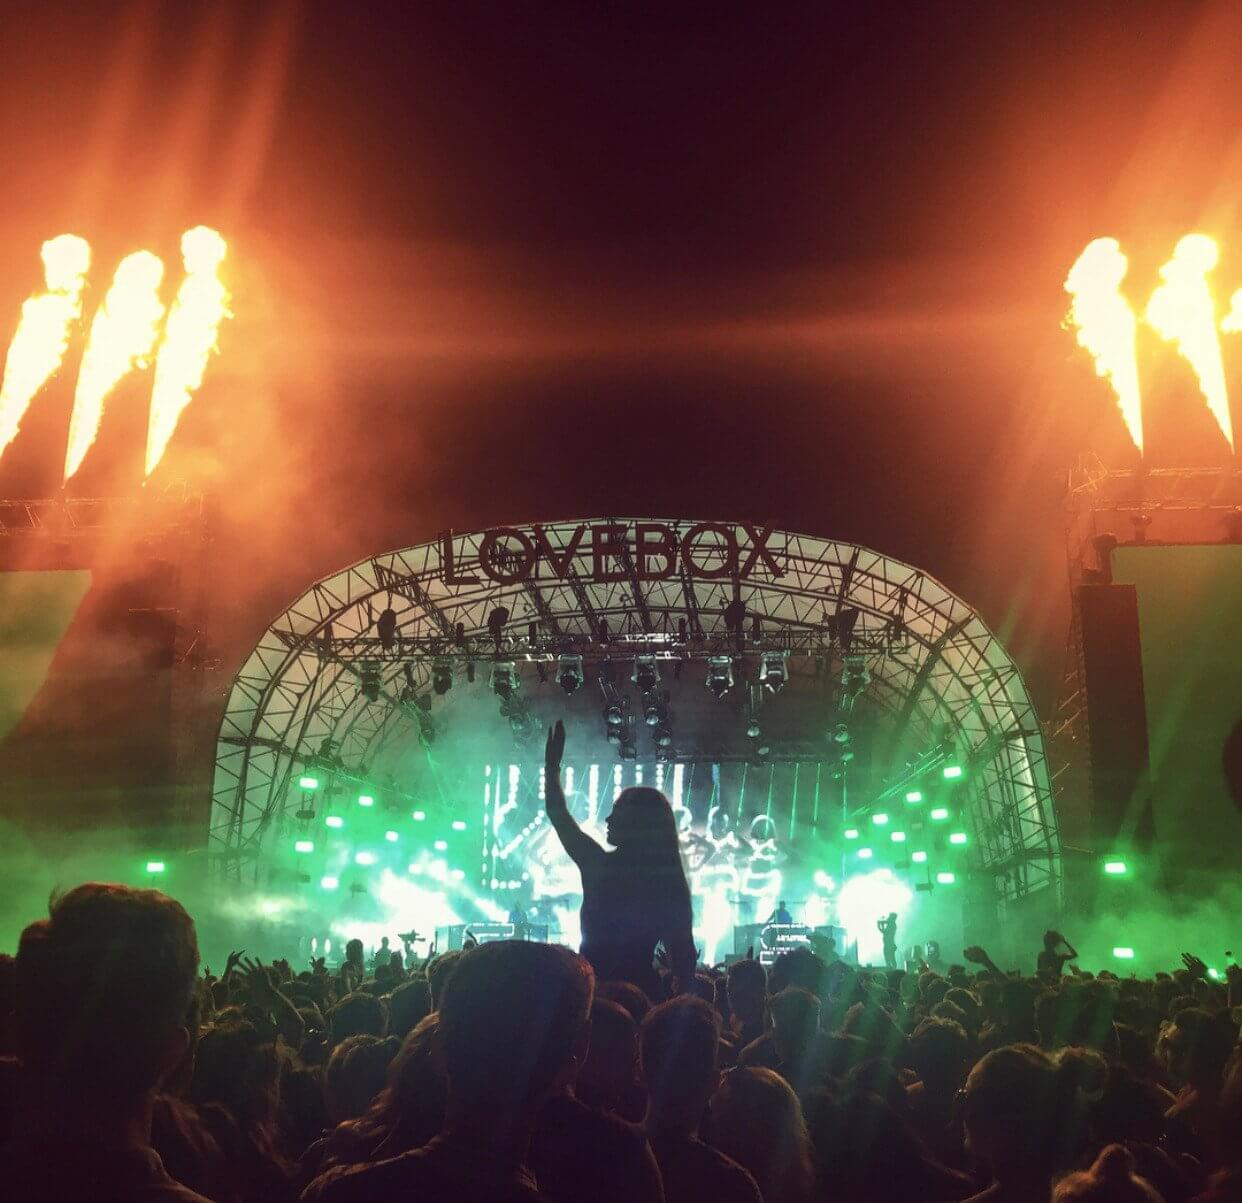 A band plays to a packed stadium at night time at the Lovebox festival in the UK